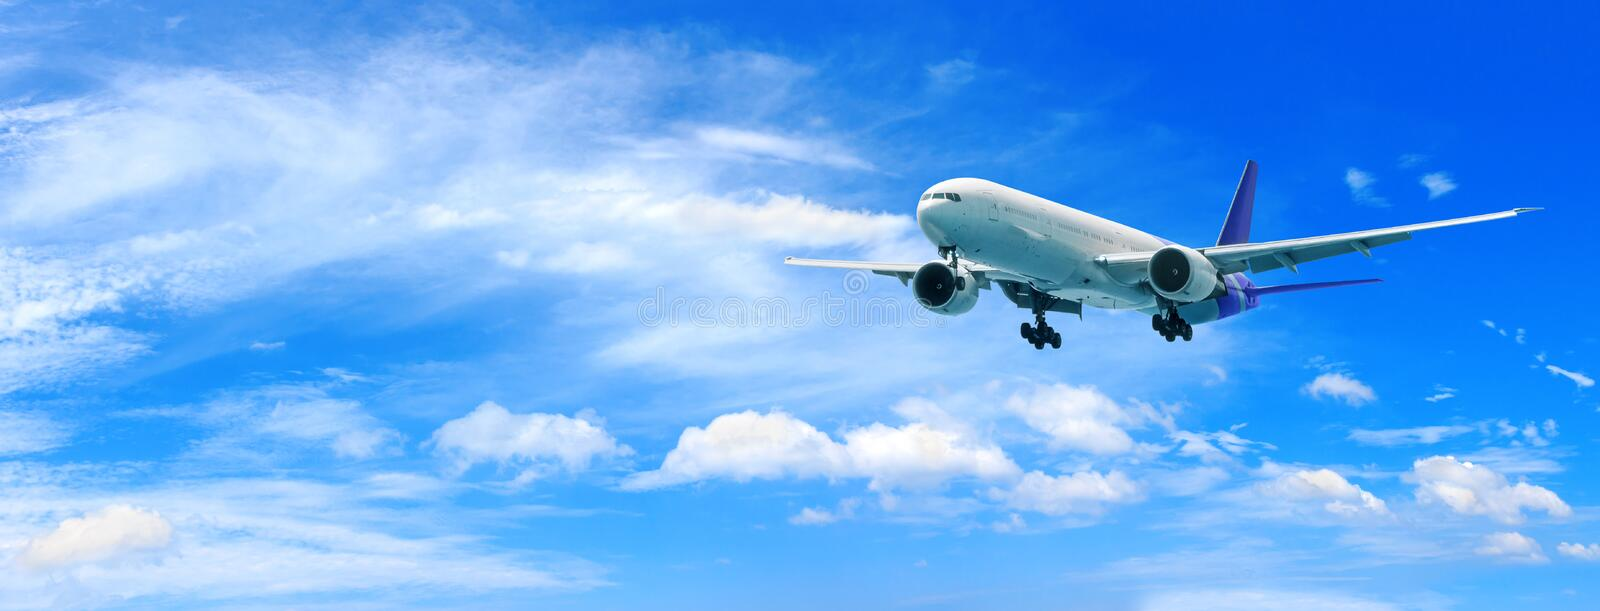 Passenger airplane flying above clouds. View from the window plane to amazing sky with beautiful clouds. stock photography